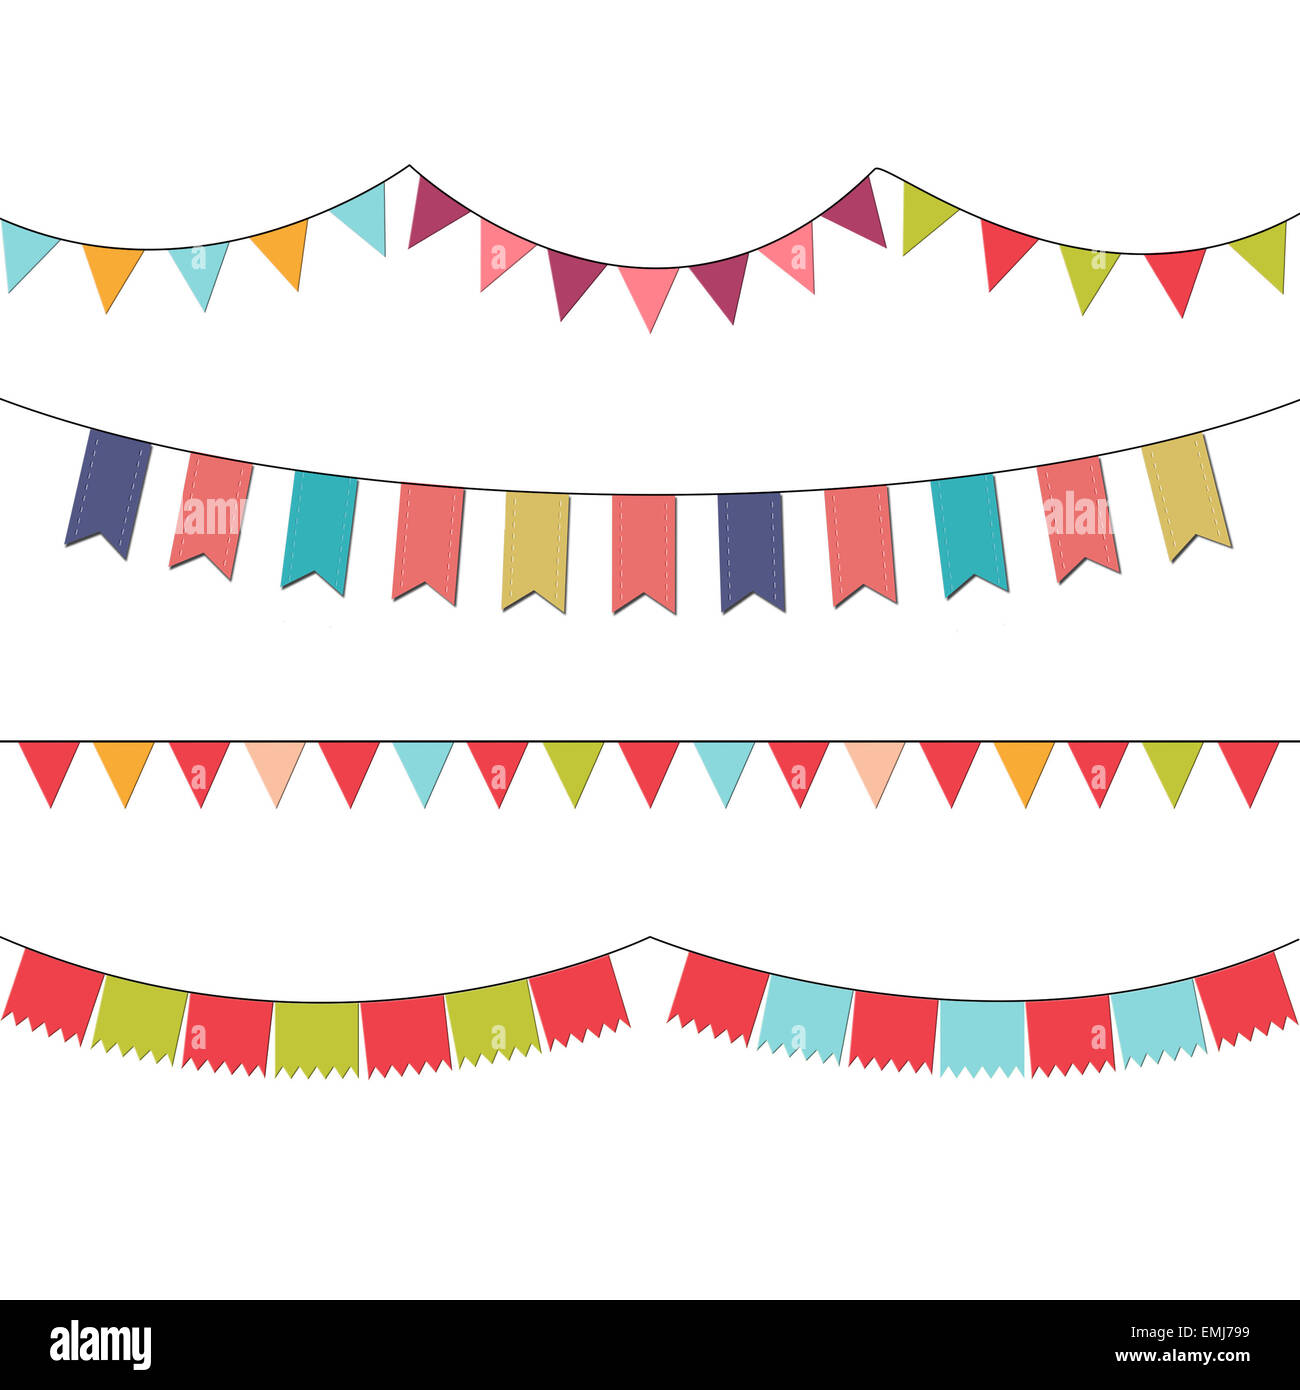 Colorful buntings for invitations, cards, flyers, celebrations. - Stock Image